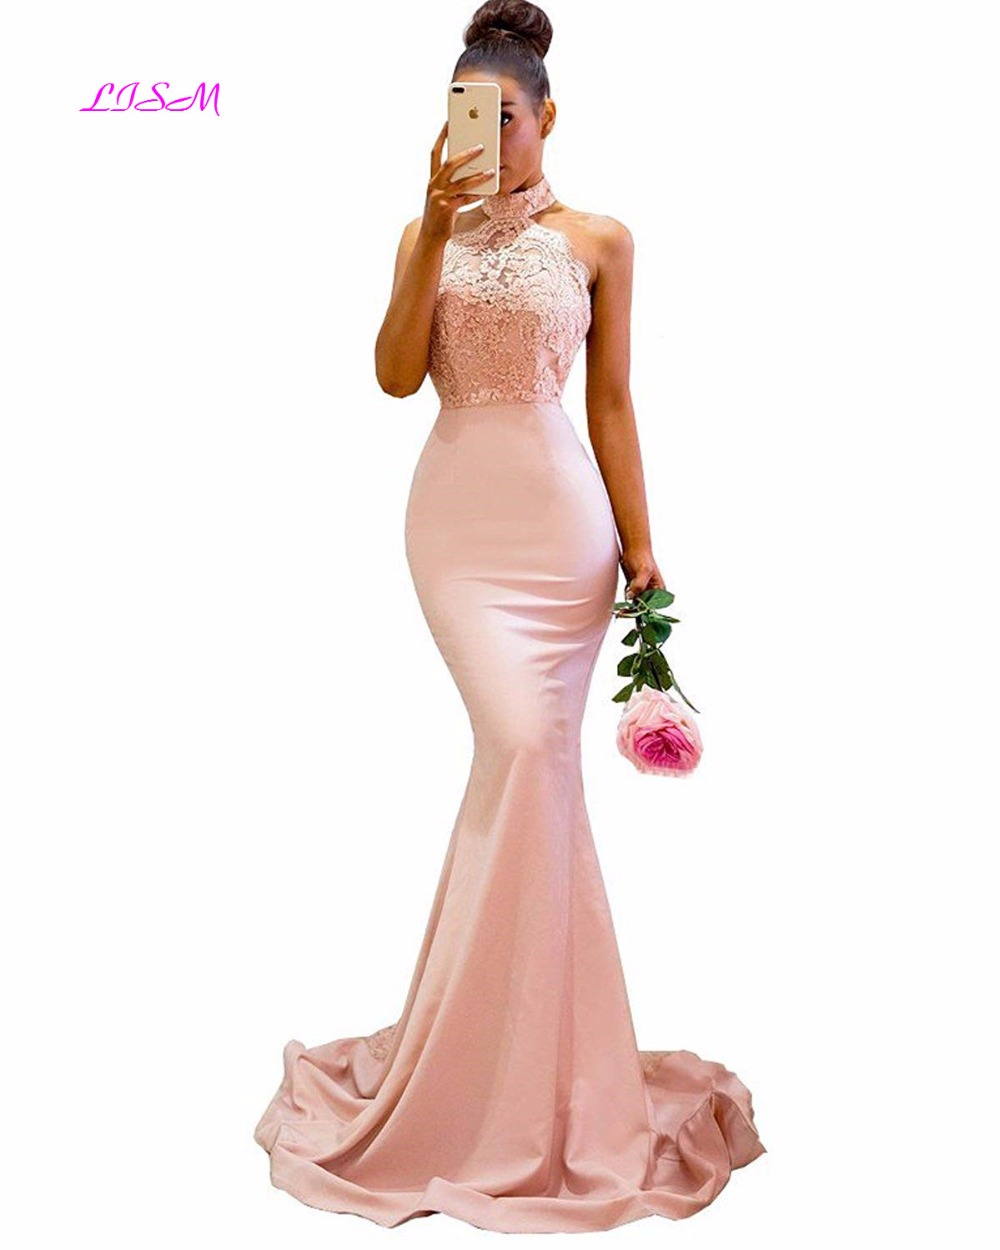 Women's Lace Appliques Mermaid   Bridesmaid     Dress   Halter Long Formal Party Gowns for Wedding High Neck Backless Satin Prom   Dresses